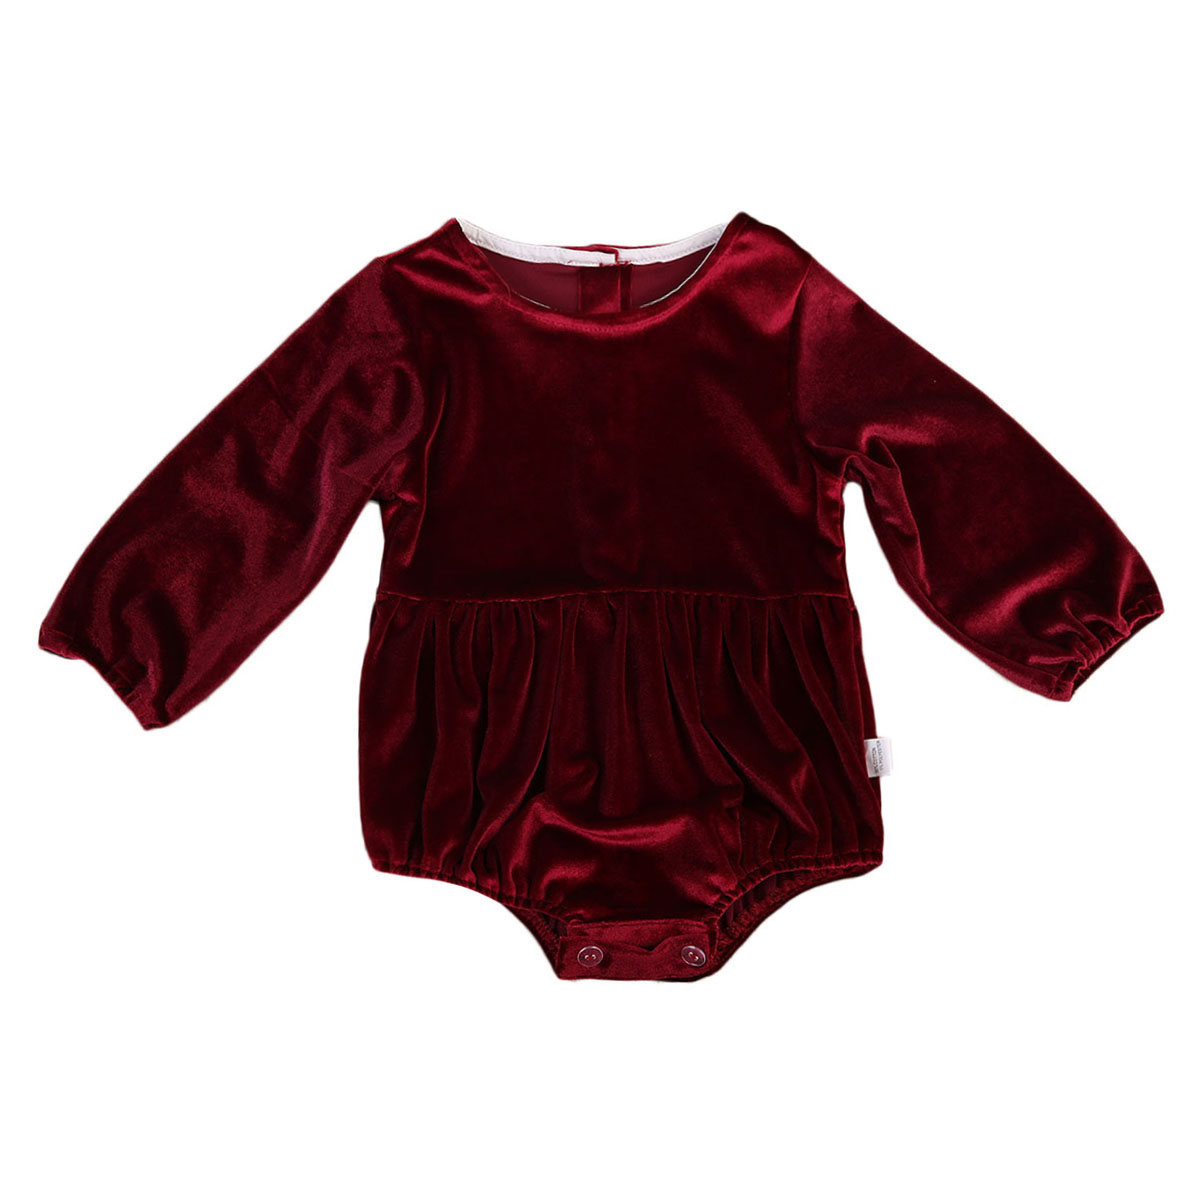 Toddler Newborn Baby Kids Girls Velvet Long Sleeve Romper Hot Jumpsuit Outfits 0-3T 2017 summer toddler kids girls striped baby romper off shoulder flare sleeve cotton clothes jumpsuit outfits sunsuit 0 4t